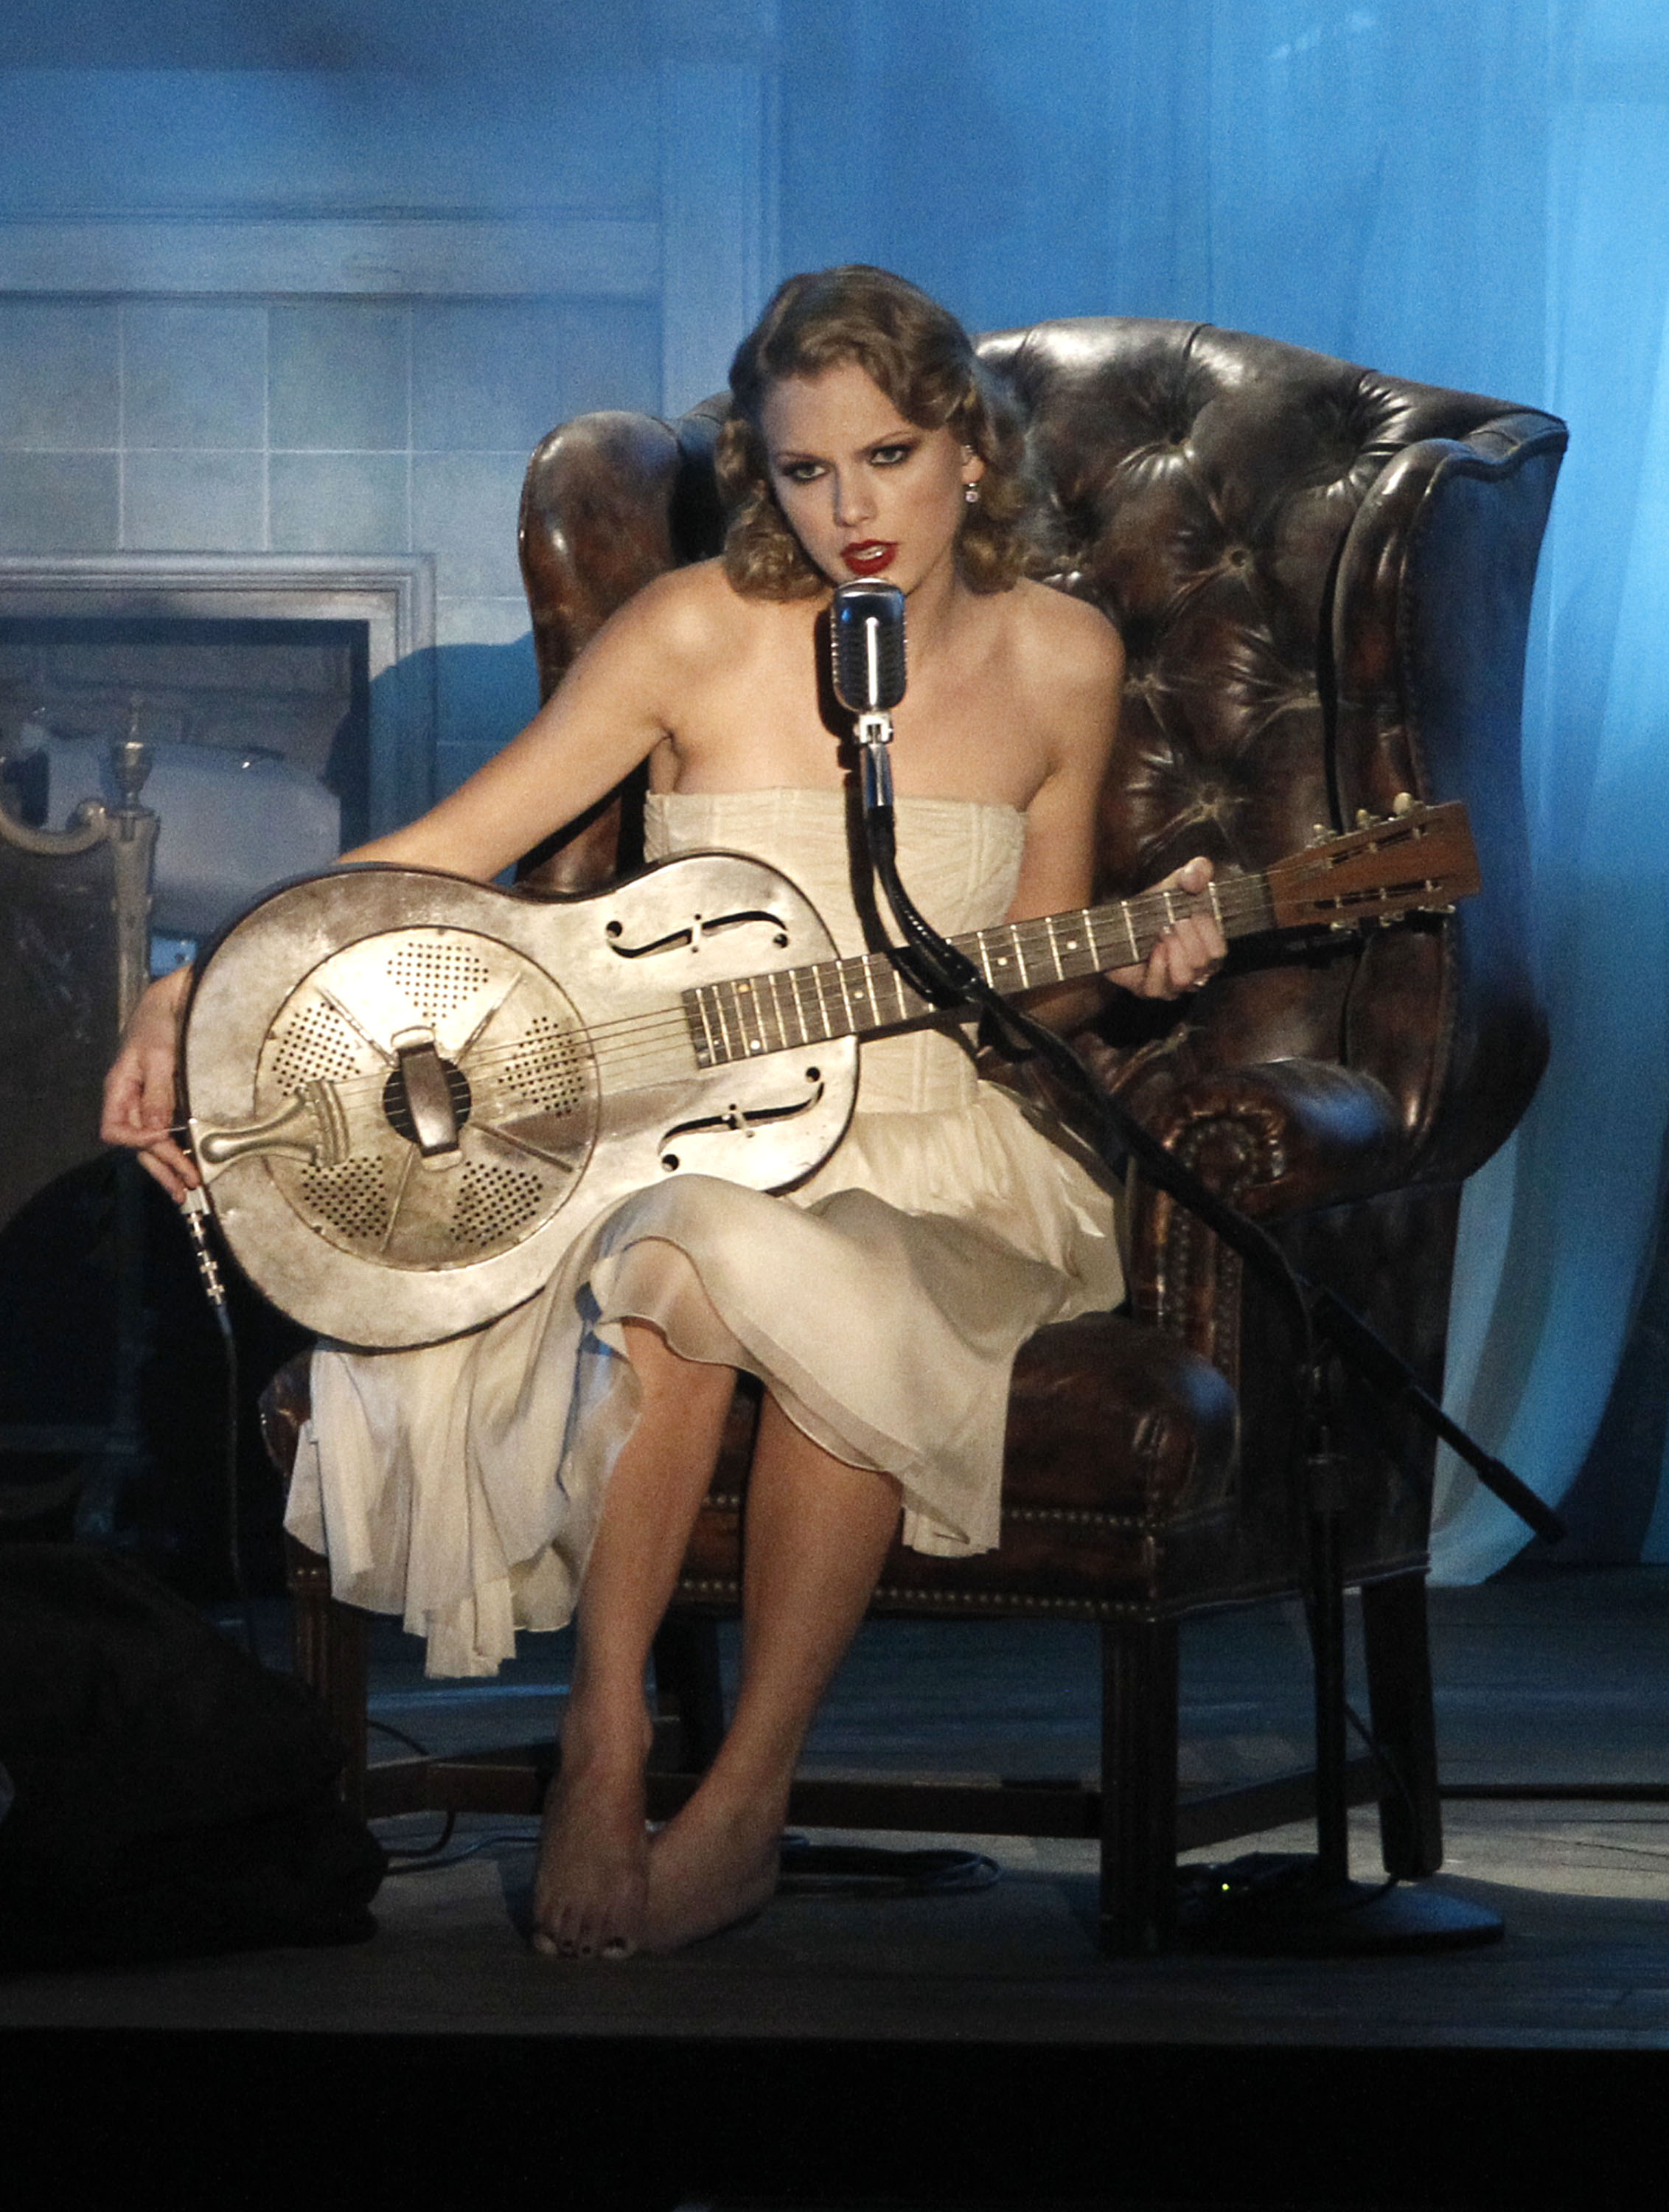 84889_Taylor_Swift_performs_at_2010_MTV_Video_Music_Awards9_122_549lo.jpg